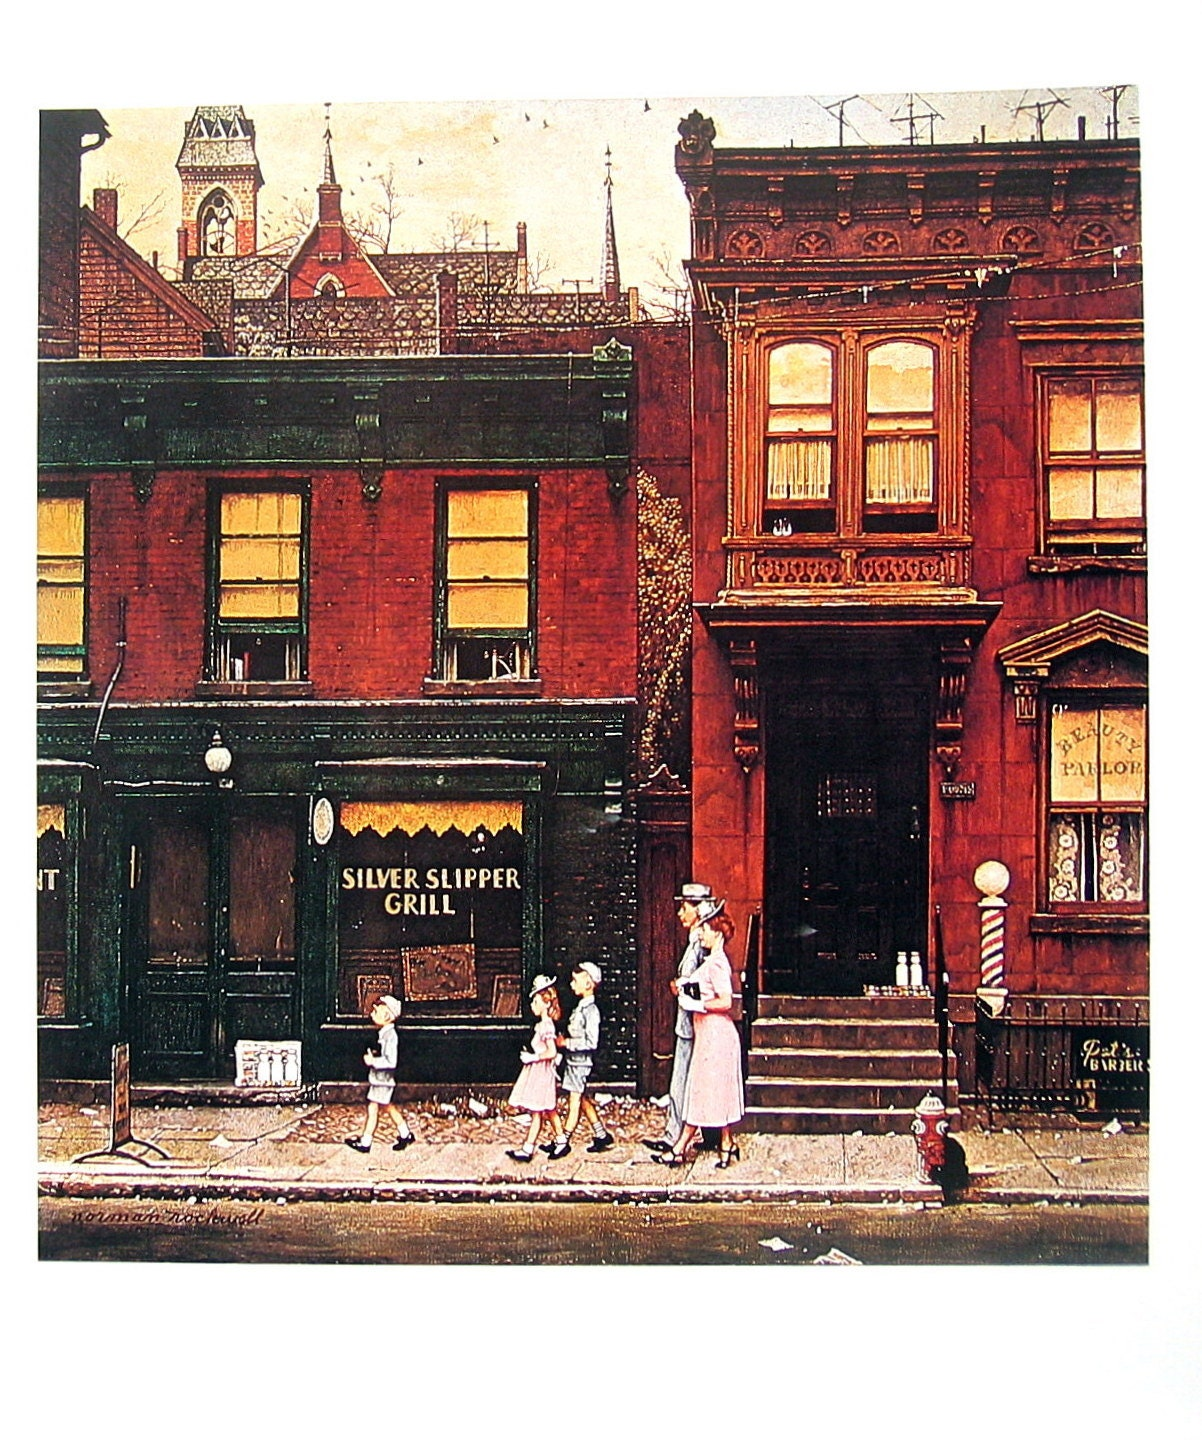 Walking To Church Large Norman Rockwell Poster Sized Print